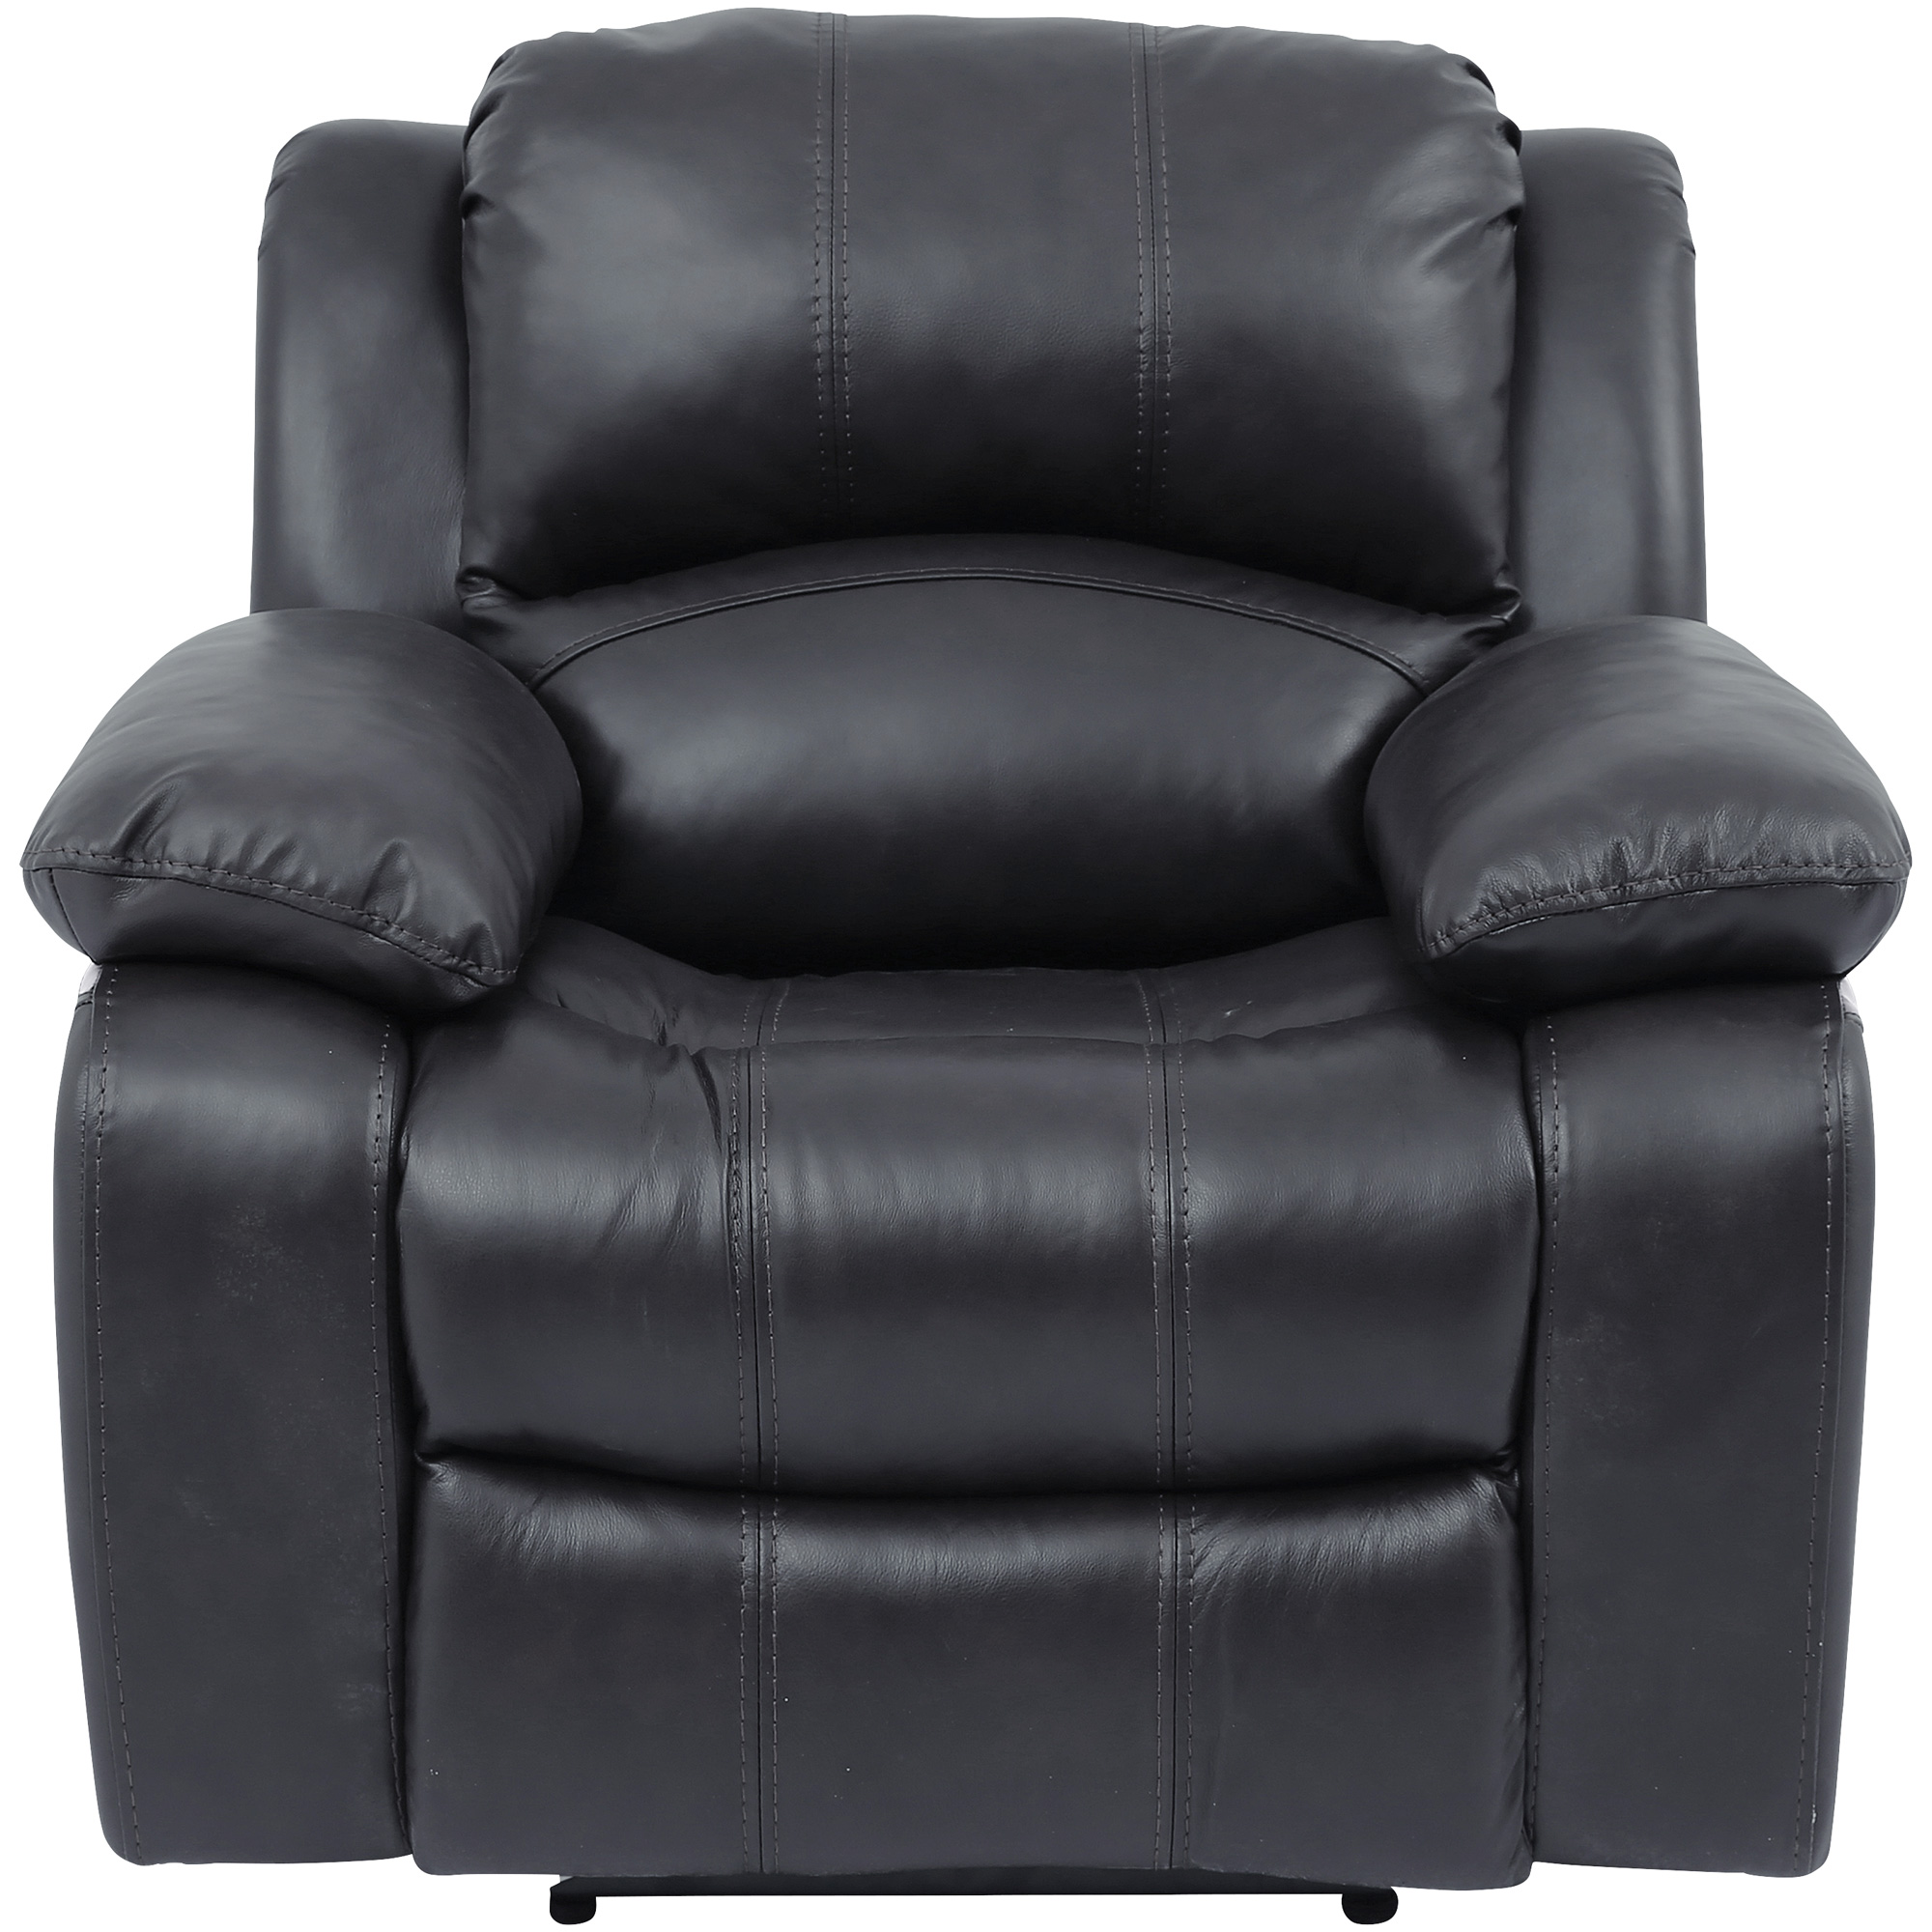 Wah Cheers | Ender Gray Leather Power+ Recliner Chair